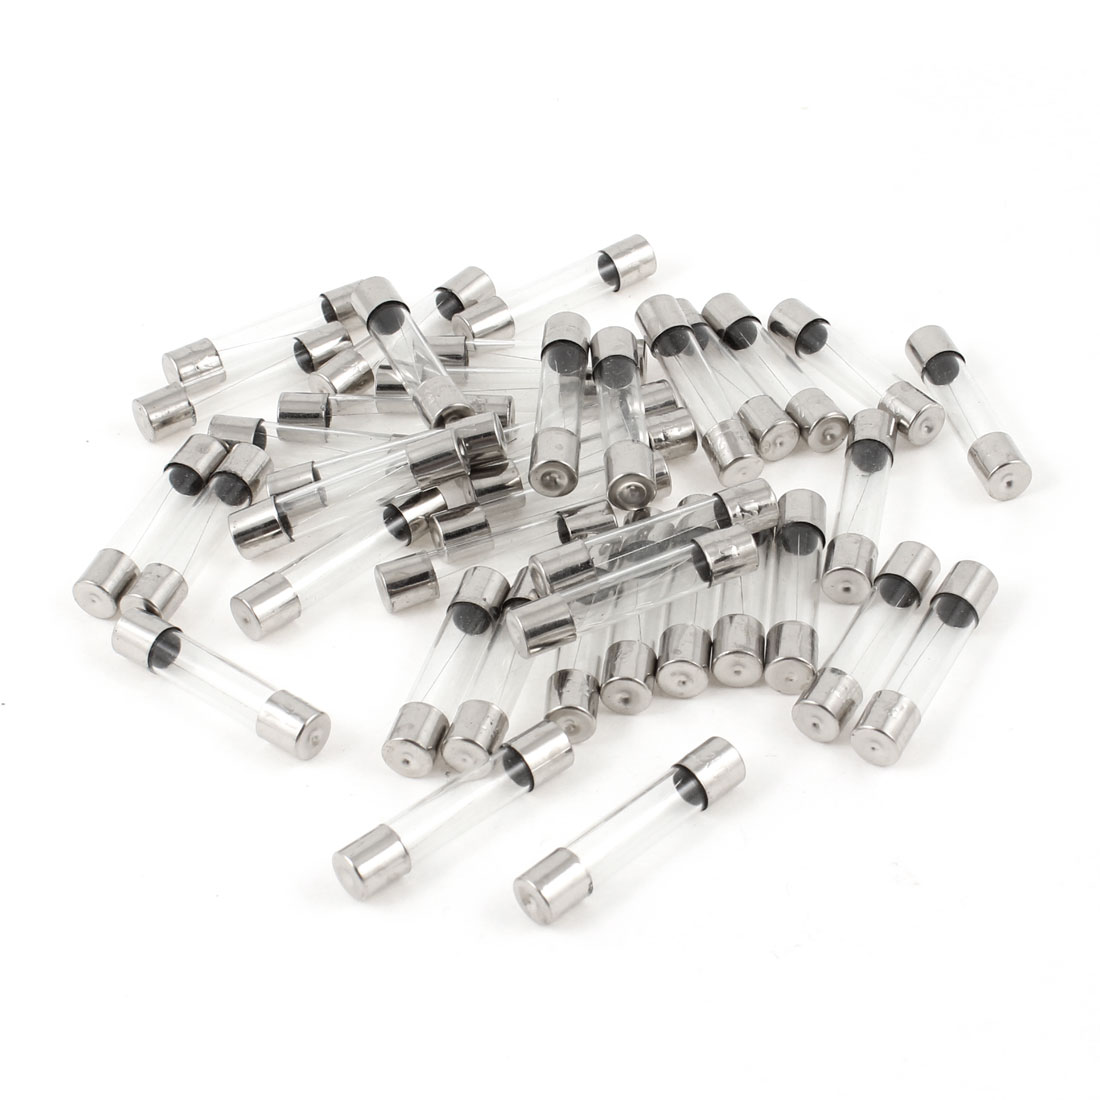 40 Pcs Quick Acting Fast Blow Glass Tube Fuses 250V 2A 6mm x 30mm